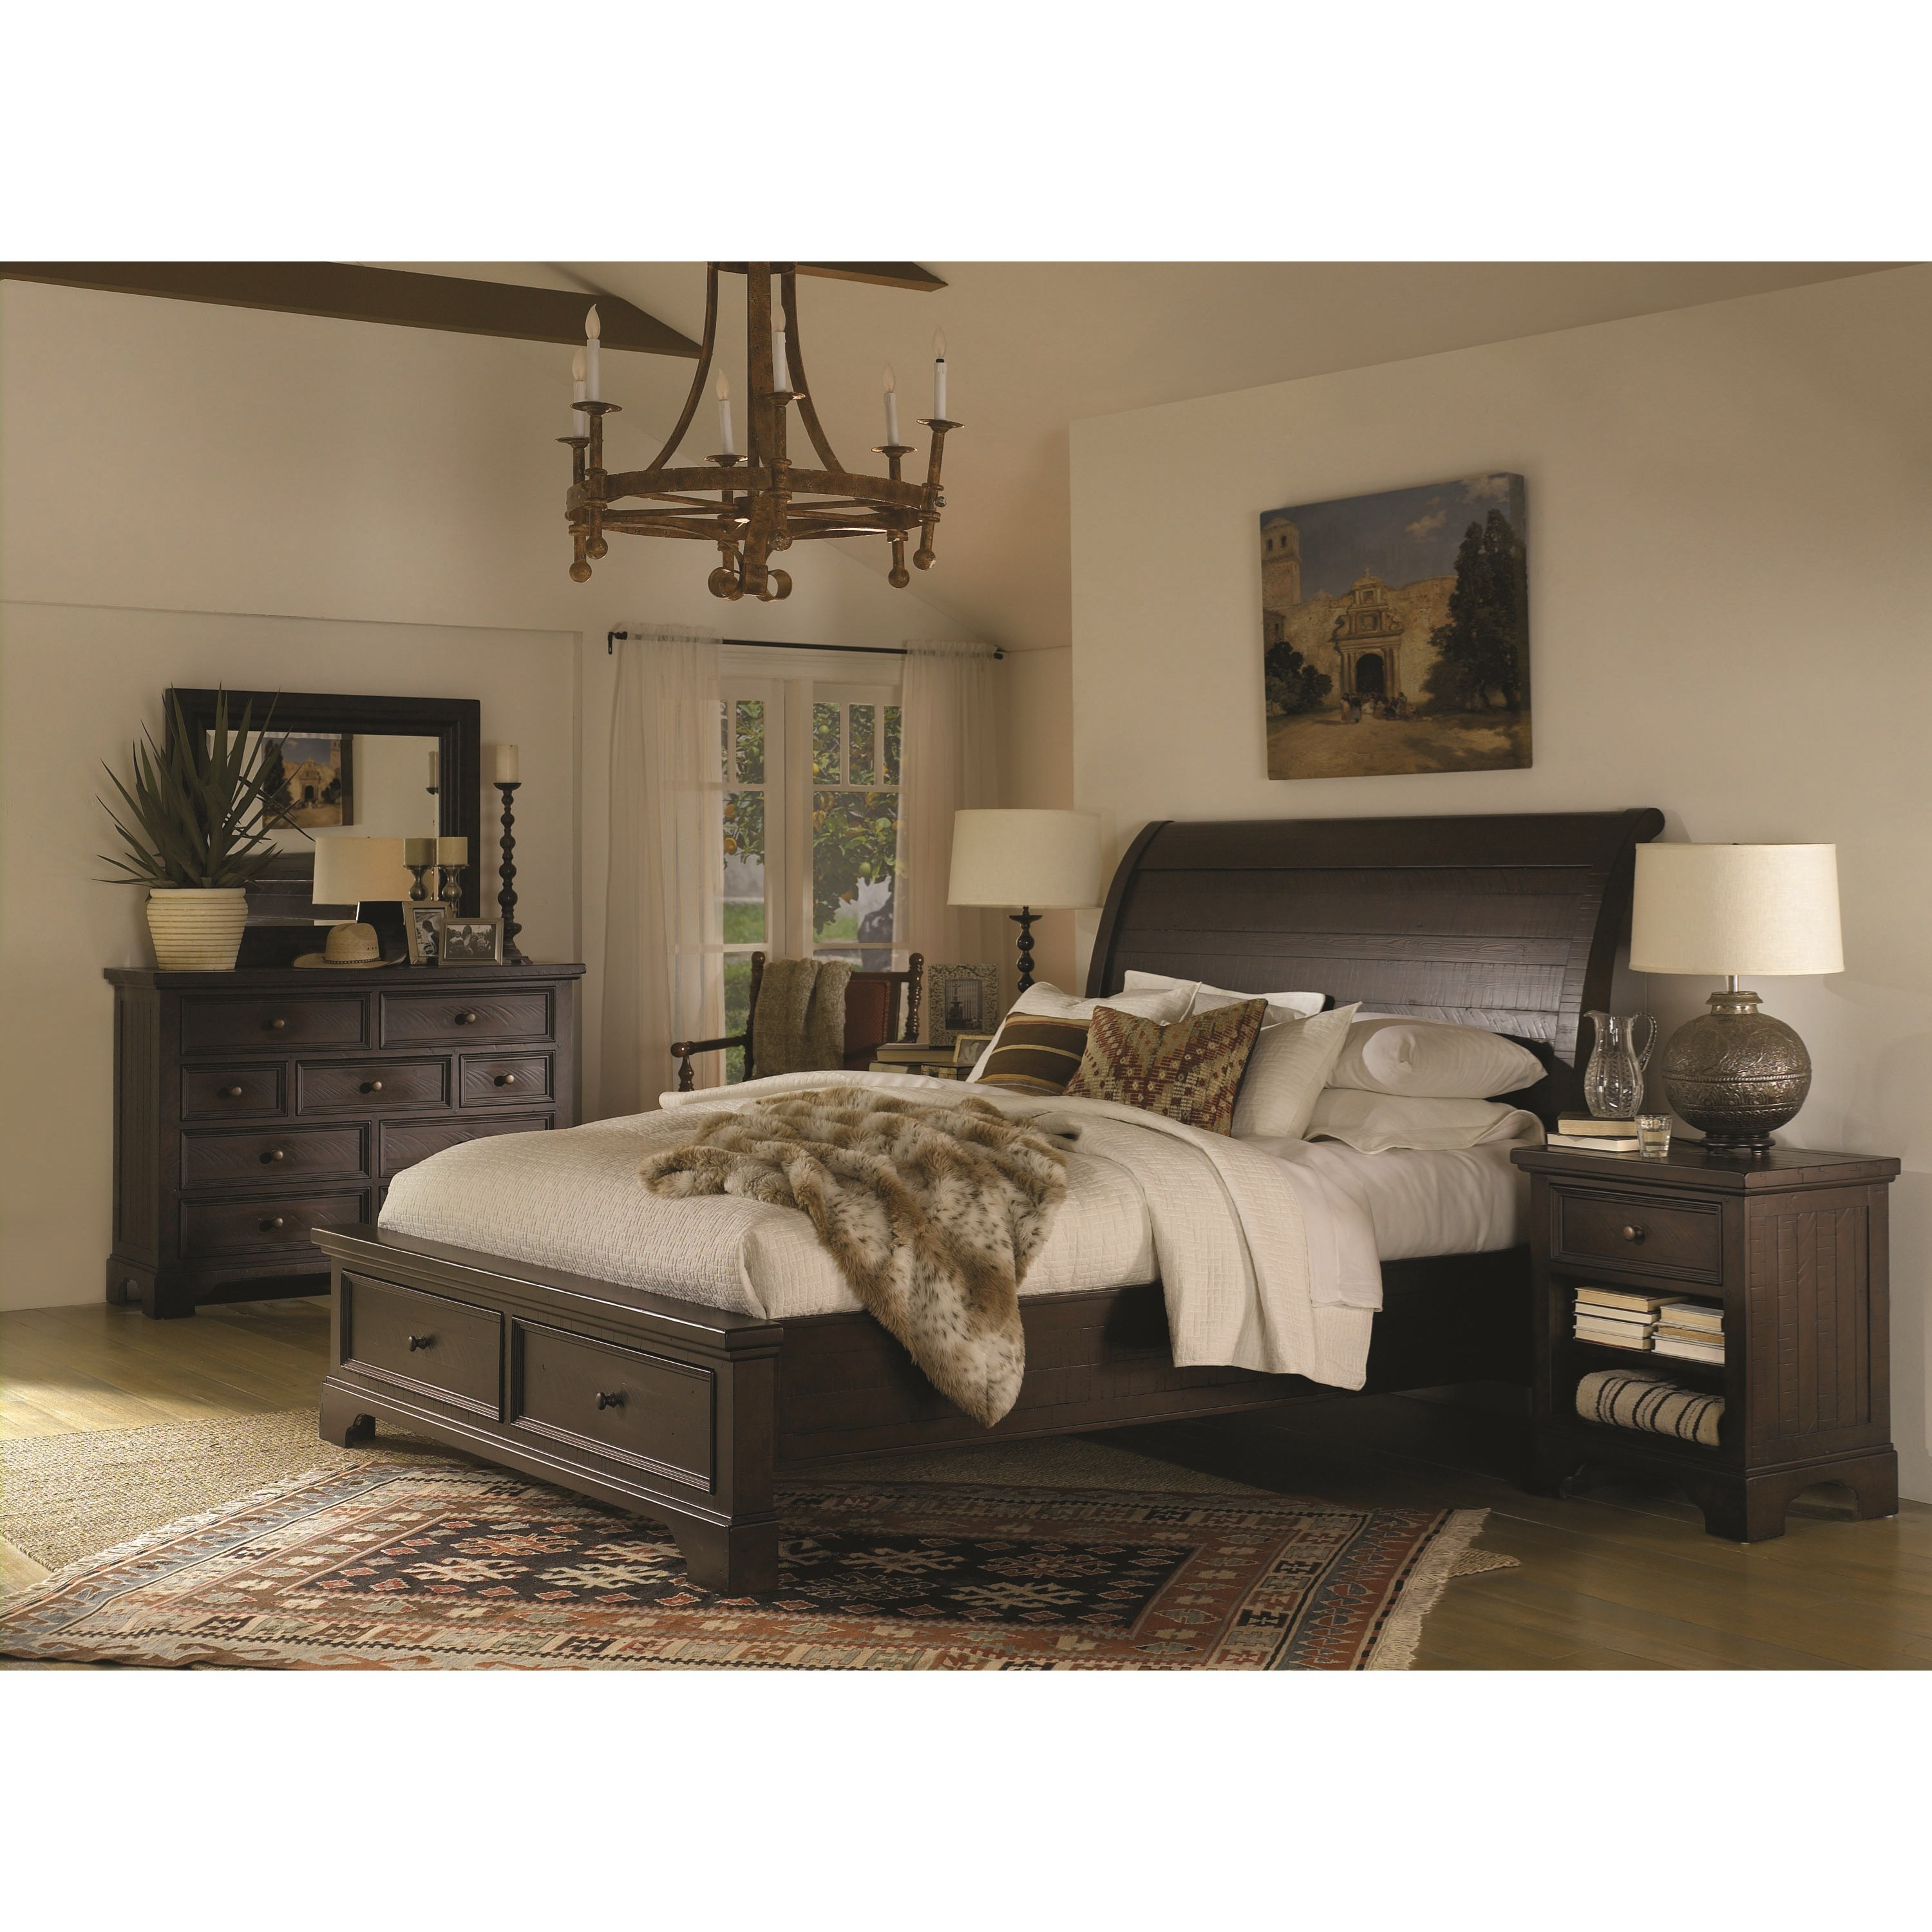 Aspenhome Bayfield Queen Sleigh Bed With Under Bed Storage Drawers Belfort Furniture Sleigh Beds